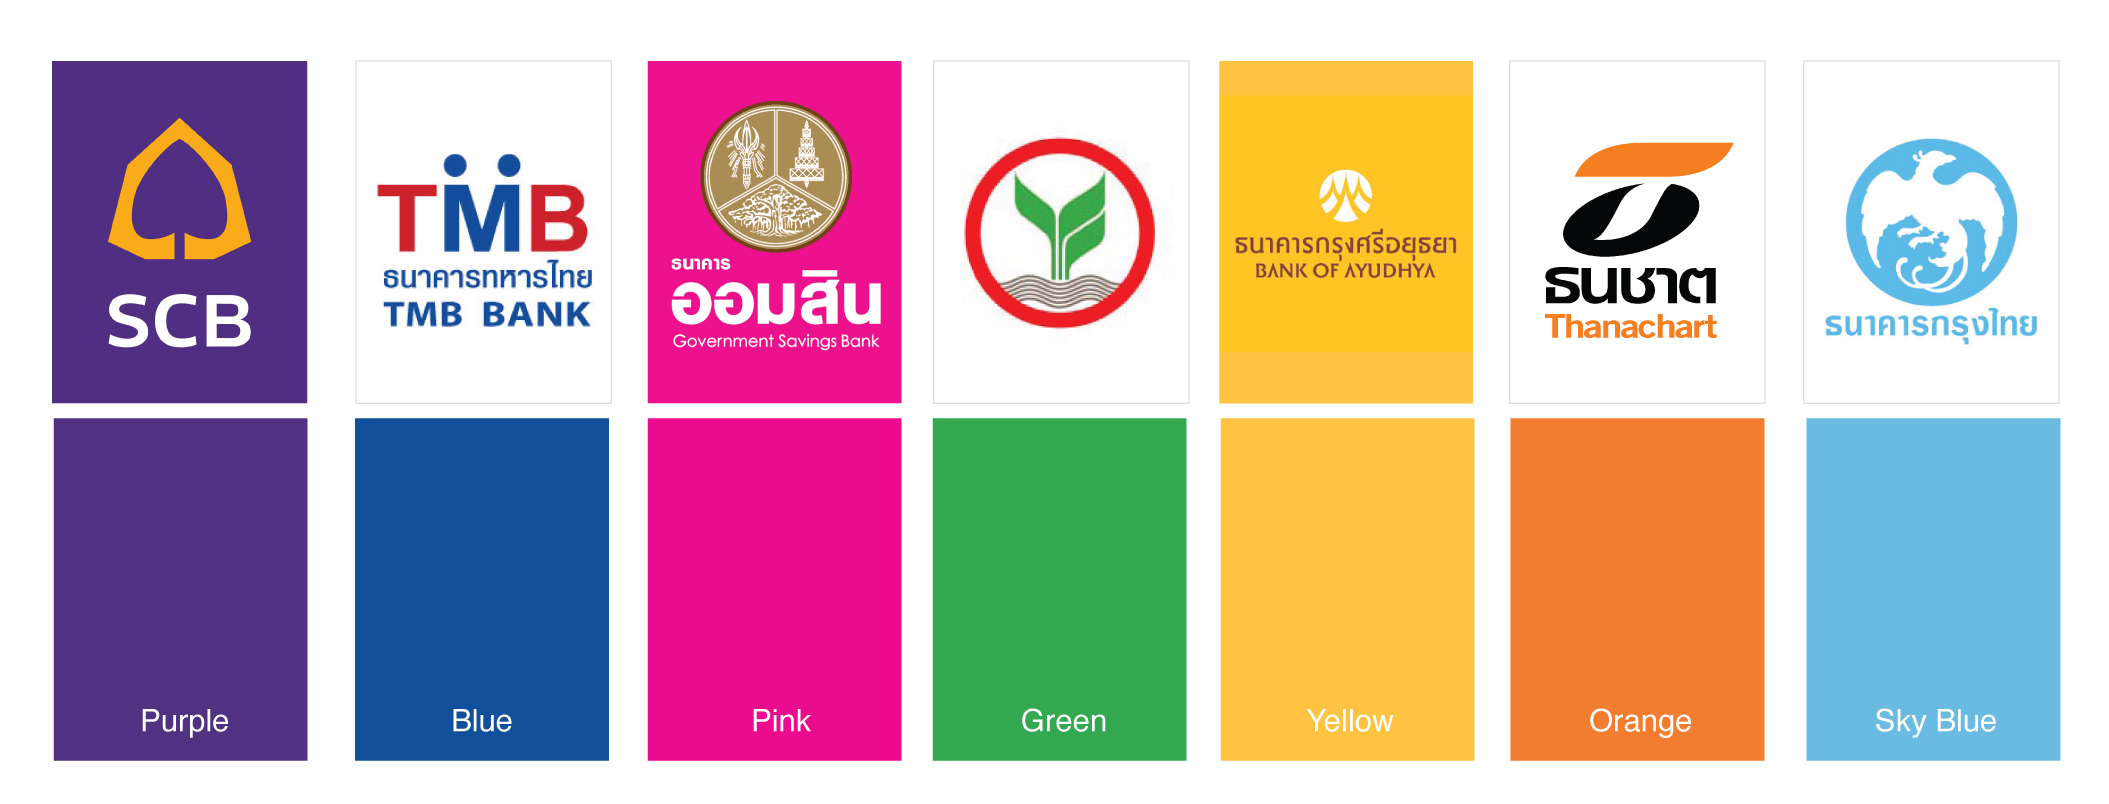 thailand_bank_brand_color